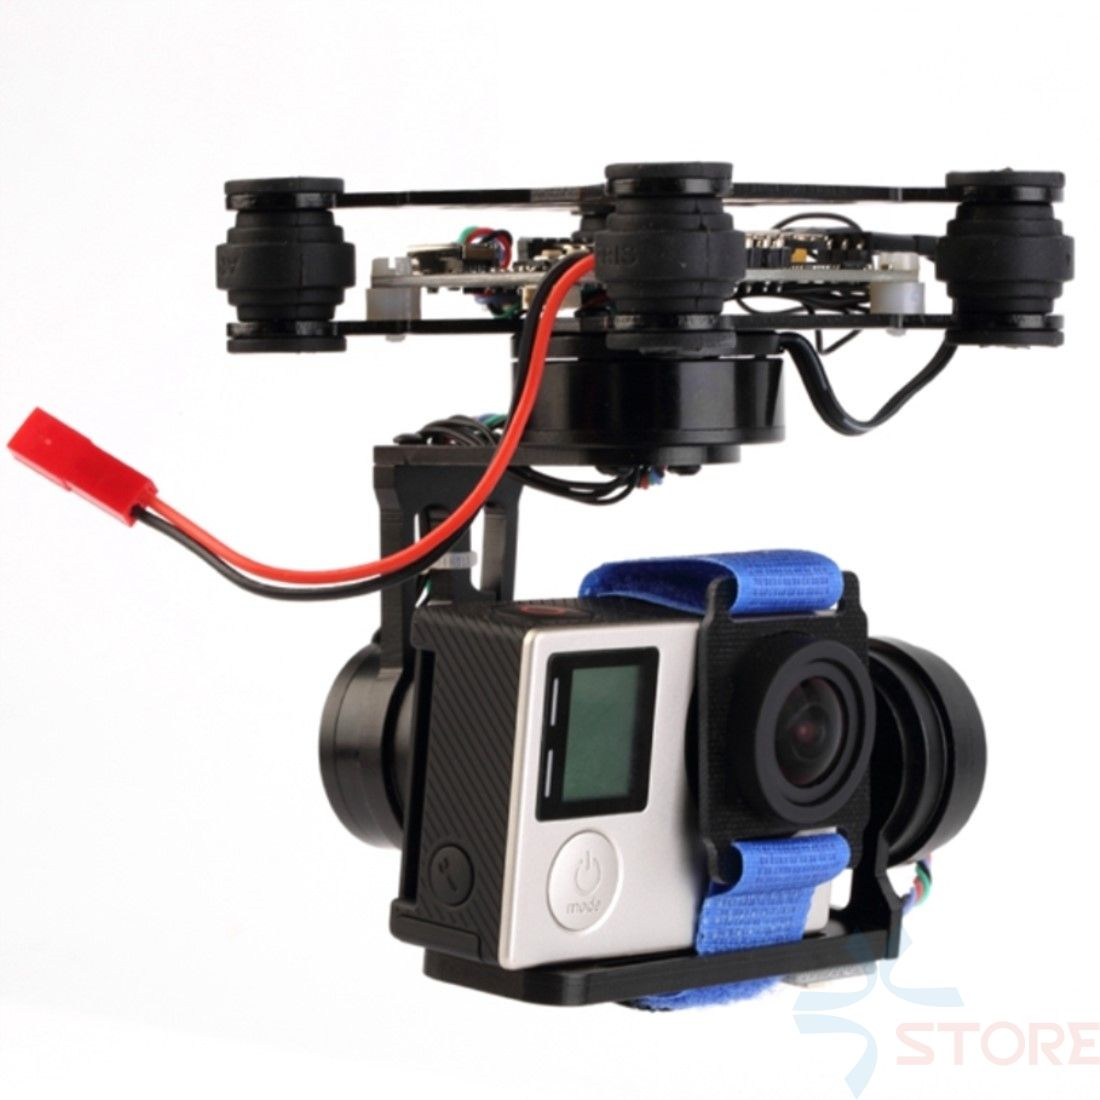 3 Axis assembled Brushless Gimbal Frame With Motors & Storm32 Controlller for Gopro 3 4 Xiaomi Xiaoyi SJ4000 SJCAM FPV RTF